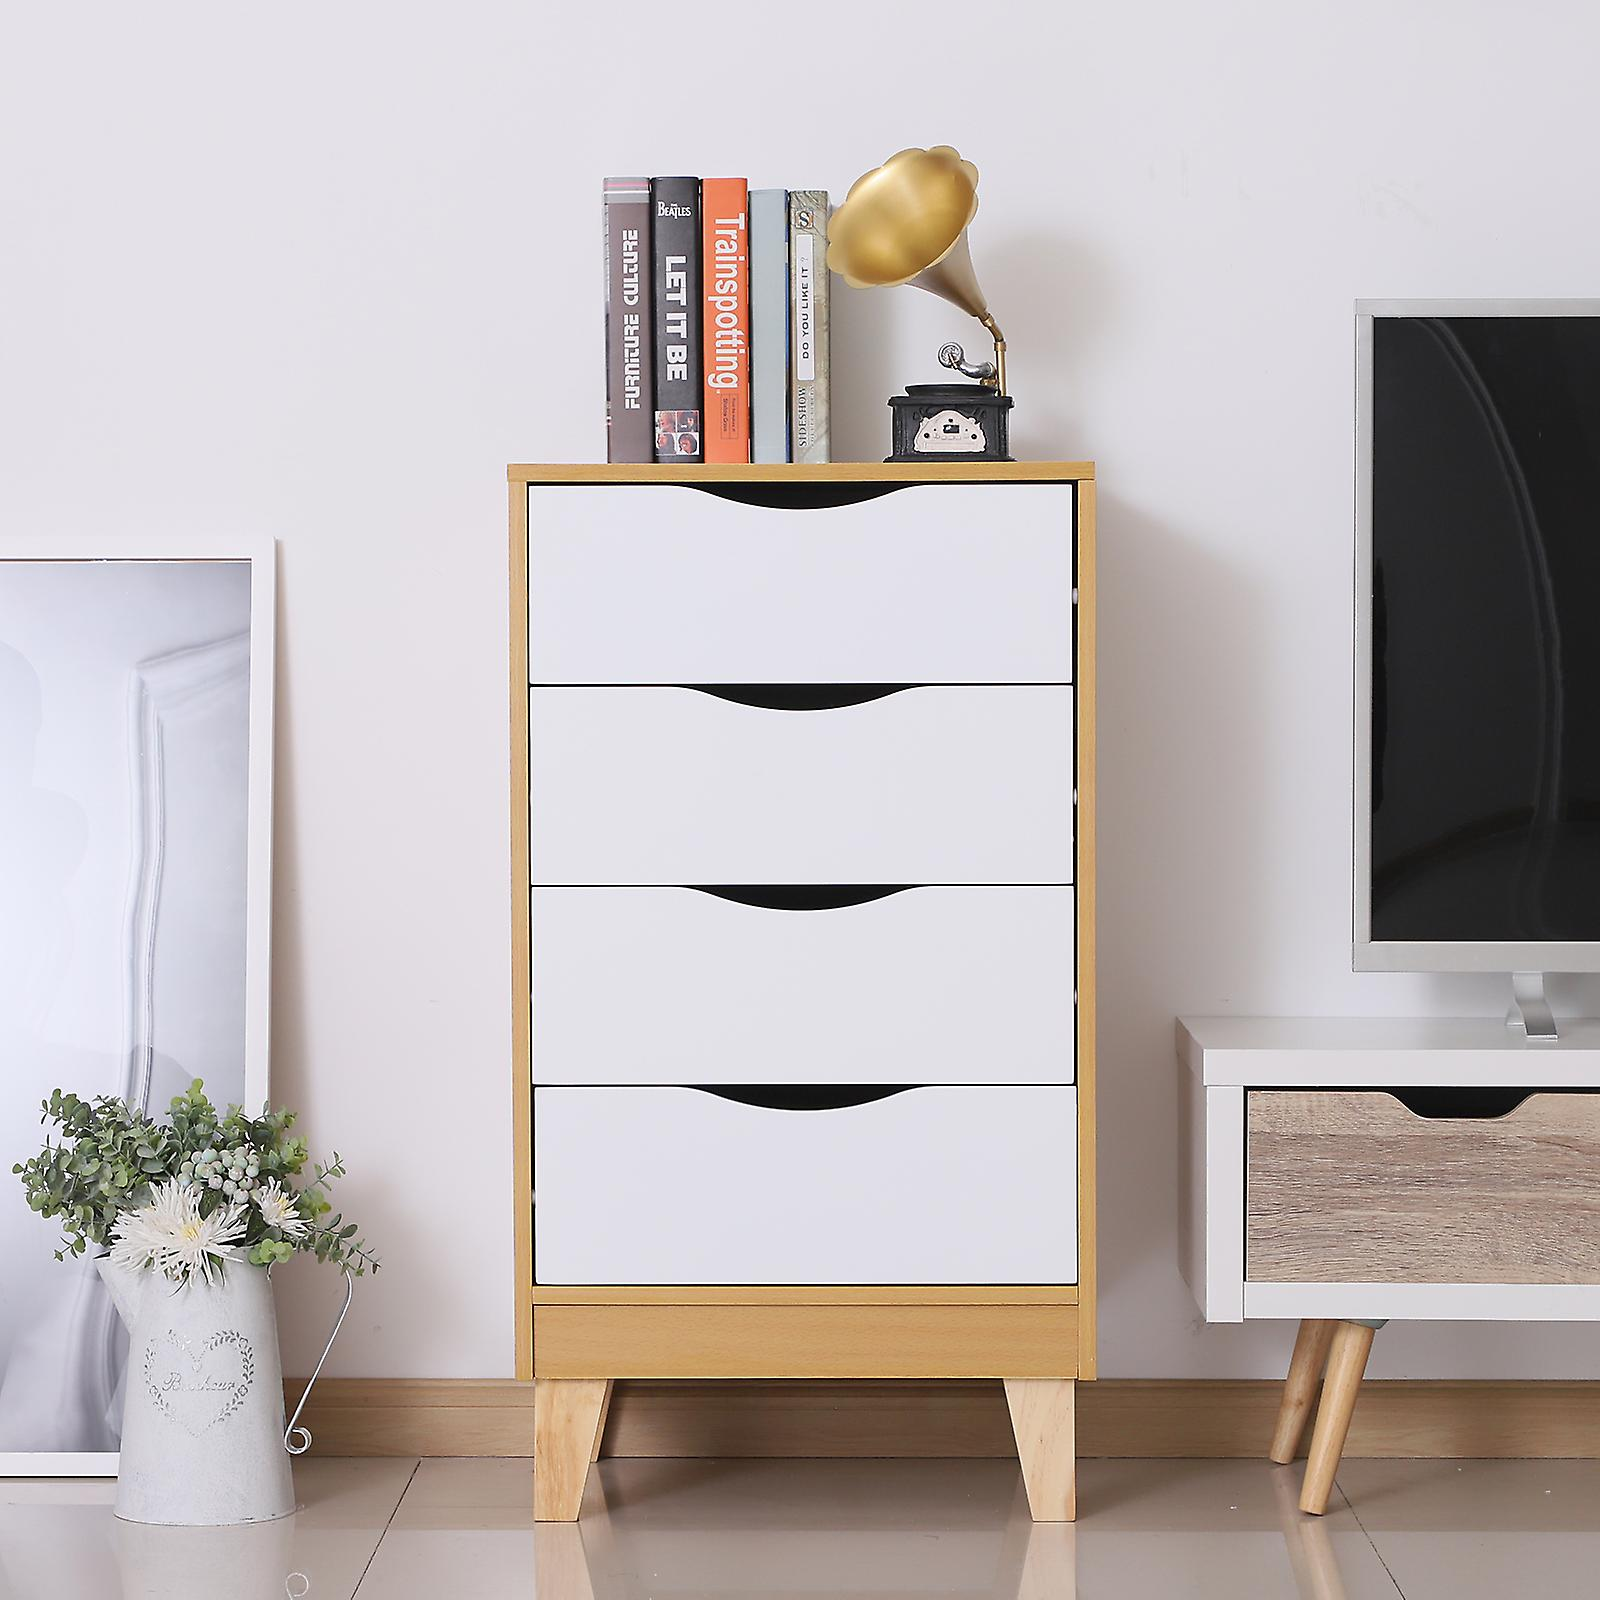 HOMCOM Nordic Style Bedside Table Night Stand Storage Chest w/ 4 Drawers Scandinavian Bedroom Furniture Elevated Feet